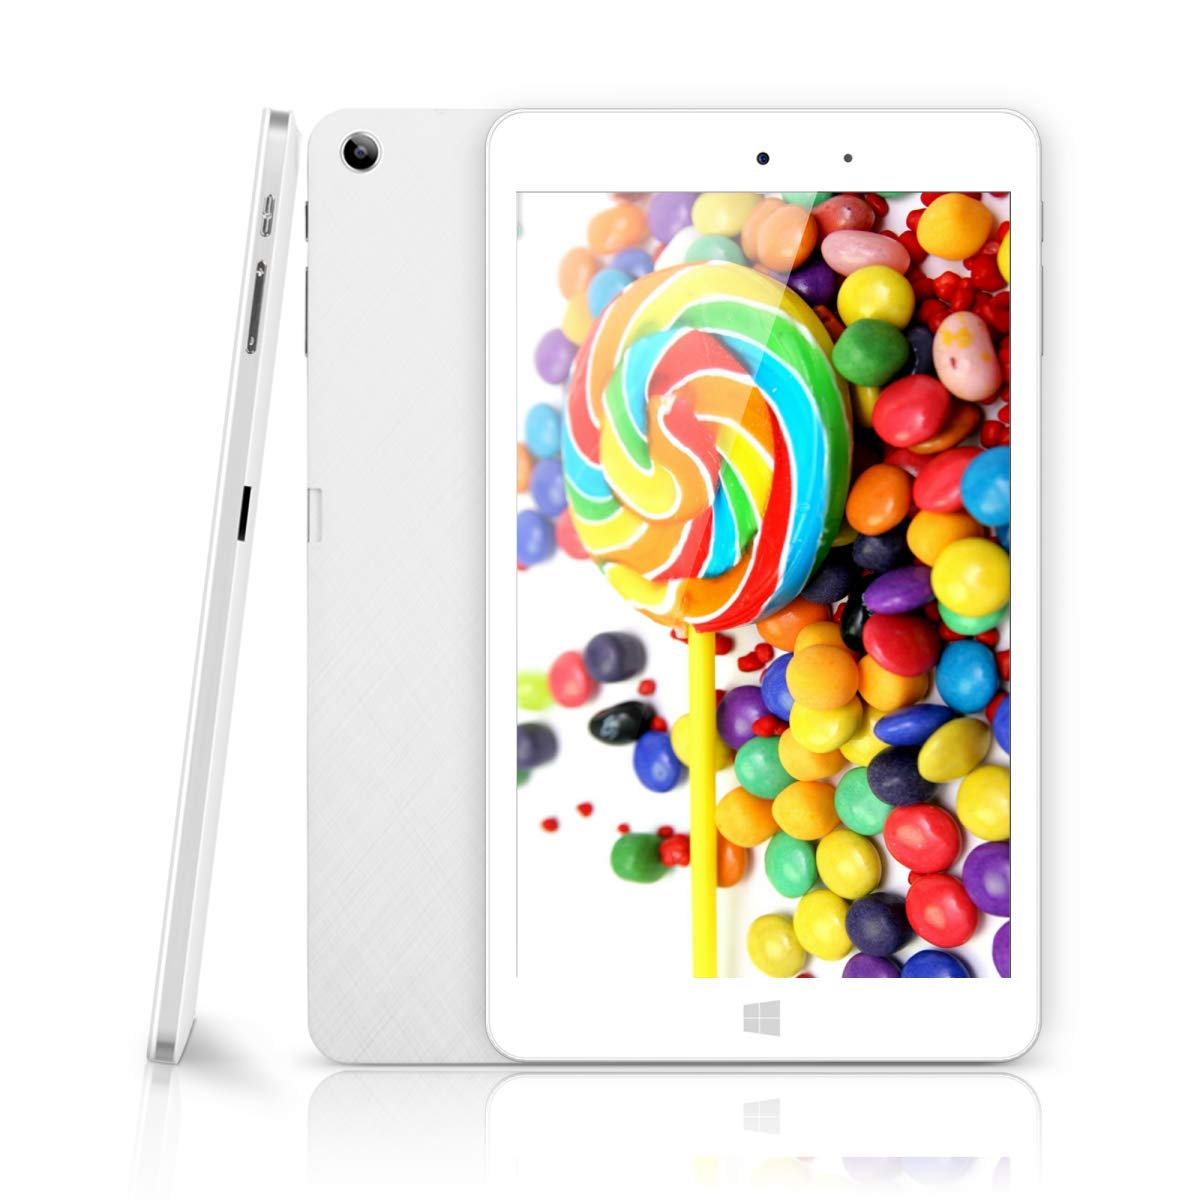 CHUWI Hi8 Pro 8 Inch IPS Full HD (1920 x 1200) Screen Tablet PC, with Intel X5 Atom Z8350 Quad Core, Windows 10/Android 5.1,2G RAM,32G ROM eMMC, 2.0M Webcam,Wifi,Type-C and Micro HDMI Port,Kids Tablet by CHUWI